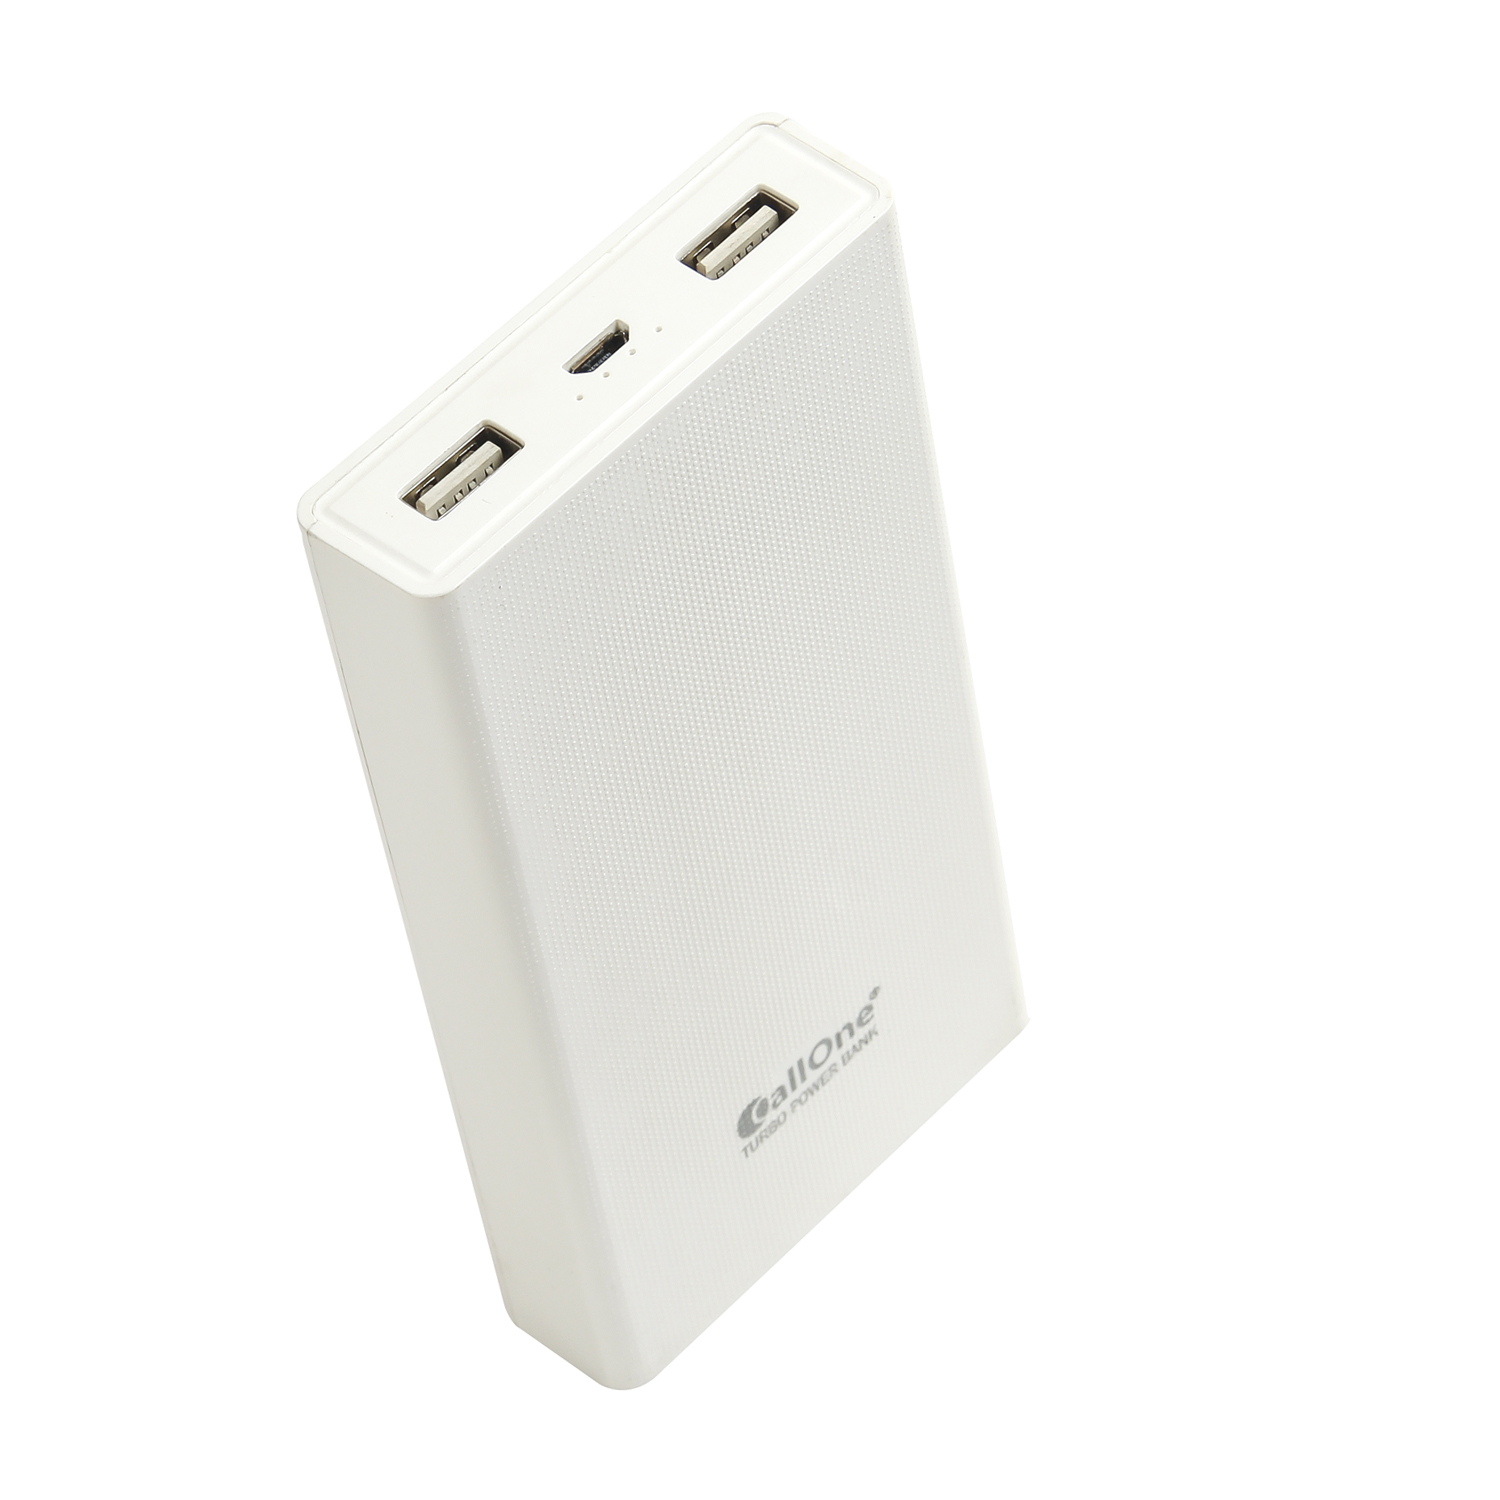 CallOne M6 15000 -mAh Li-ion Dual USB Port High-Speed Charging Technology, Power Bank Compatible with All Smartphones